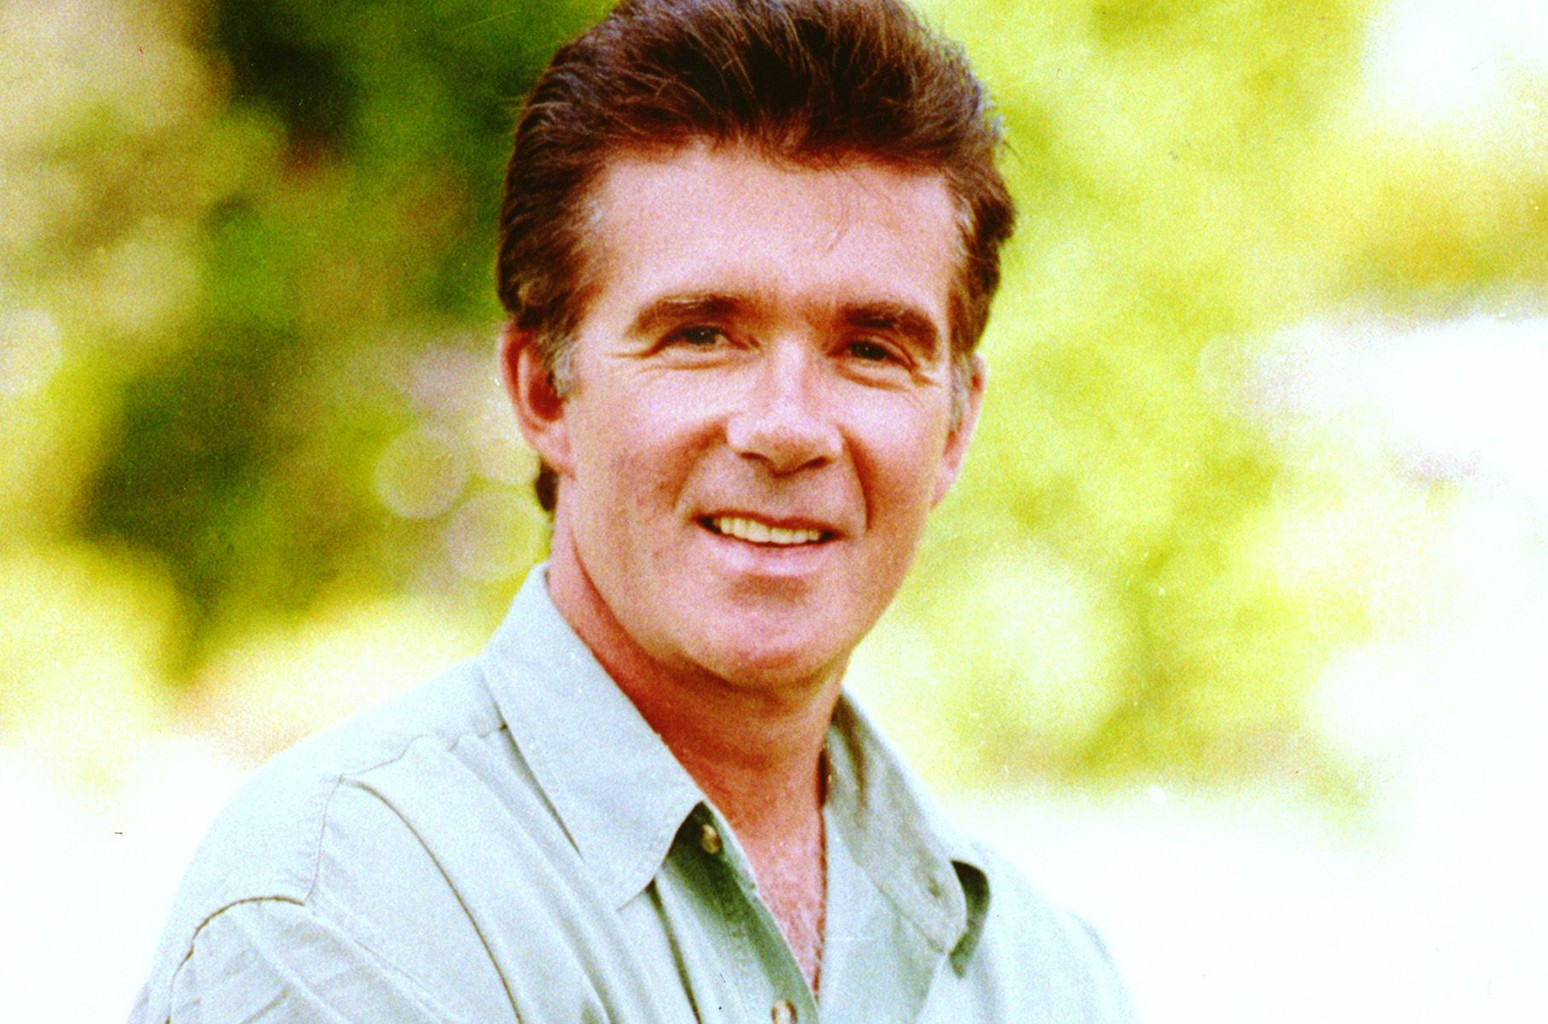 Alan Thicke poses during an interview in Los Angeles in May, 1992.